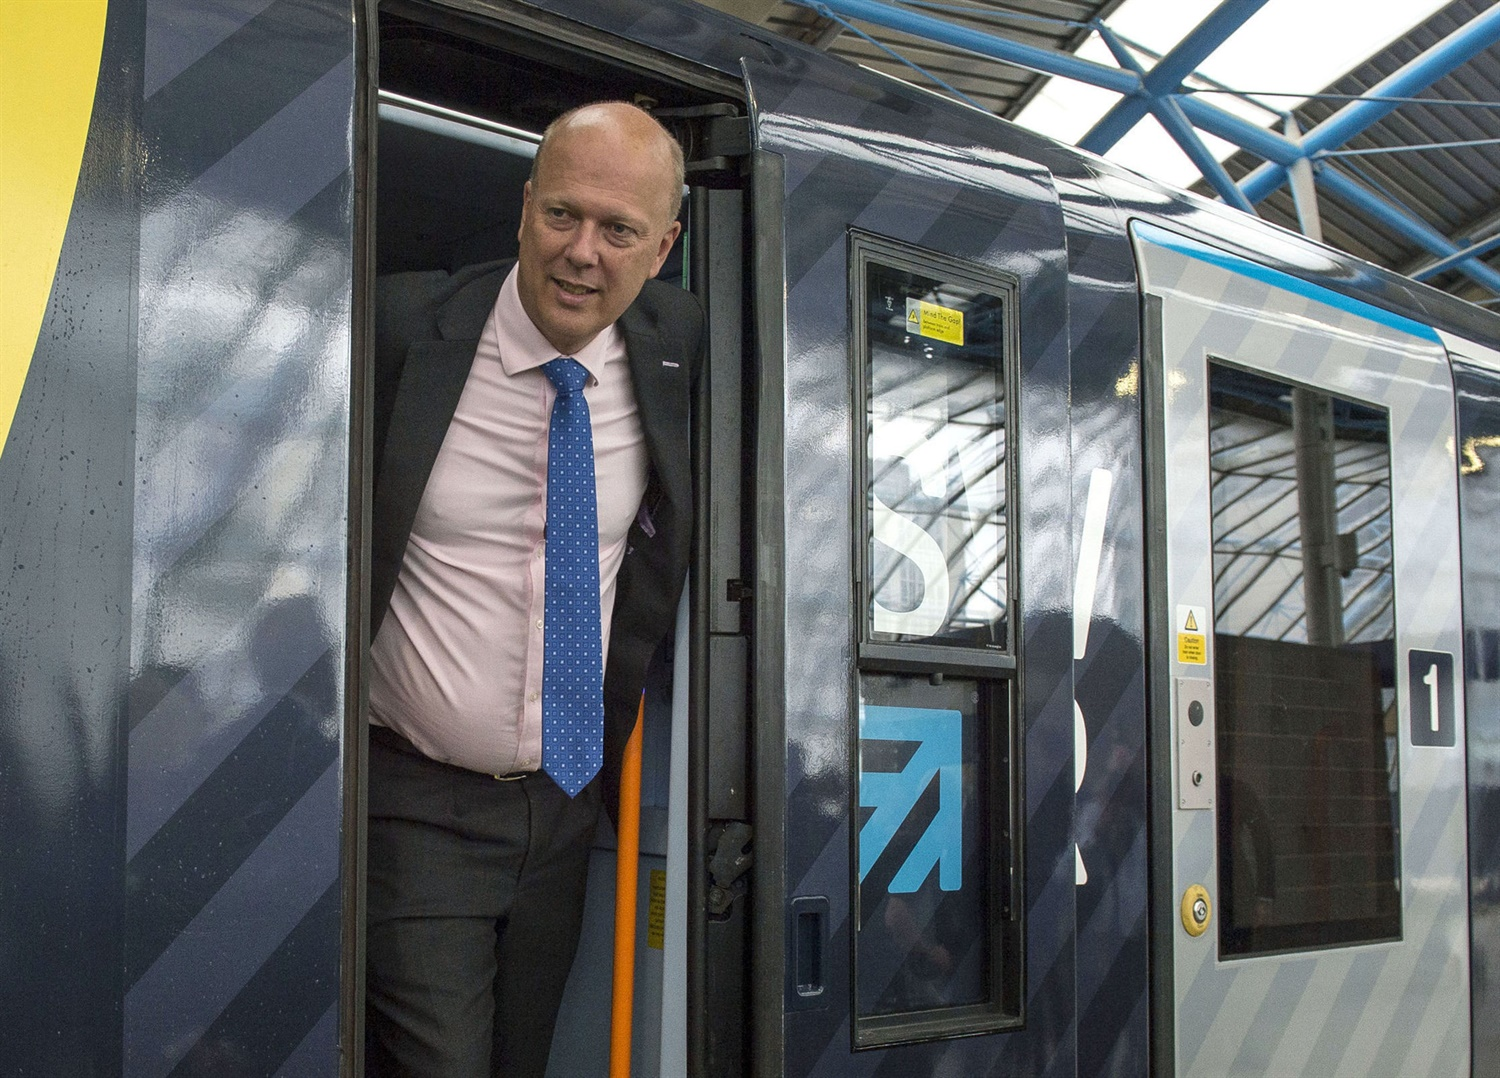 Manchester council scolds Grayling for living in 'complete fantasy' on rail expansion delays